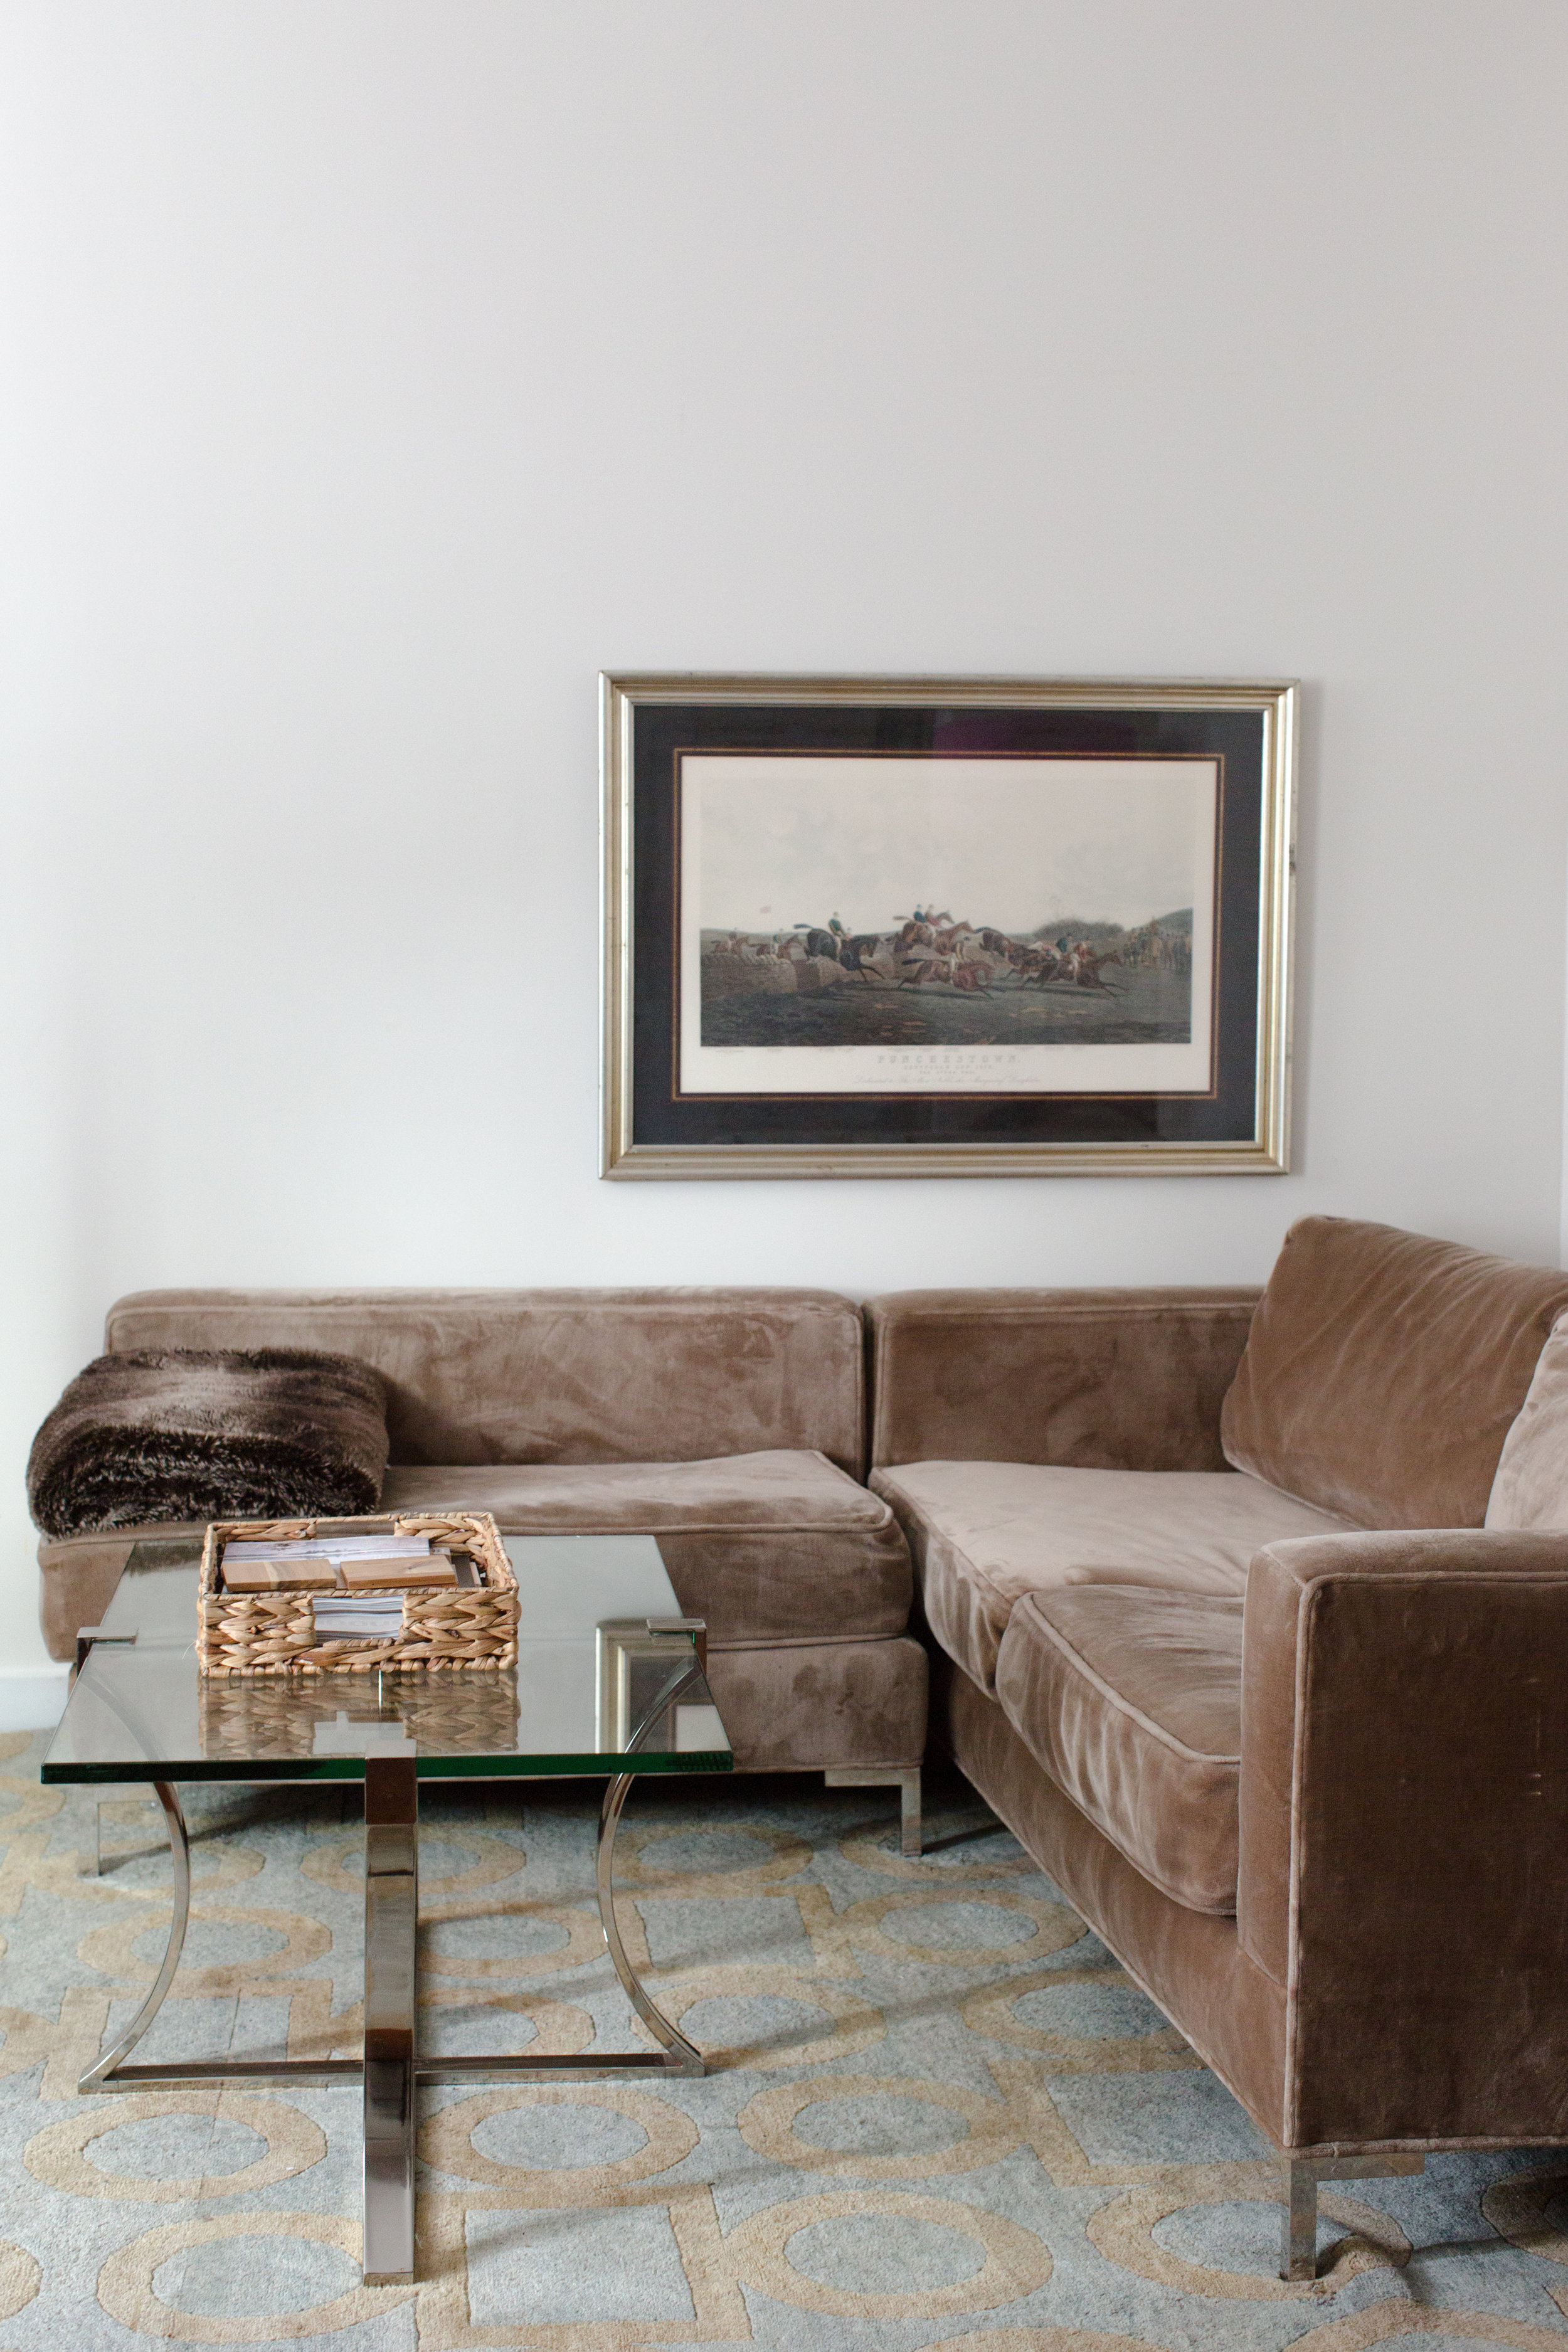 The Pint living room with framed art, glass coffee table and brown L-shaped velvet couch